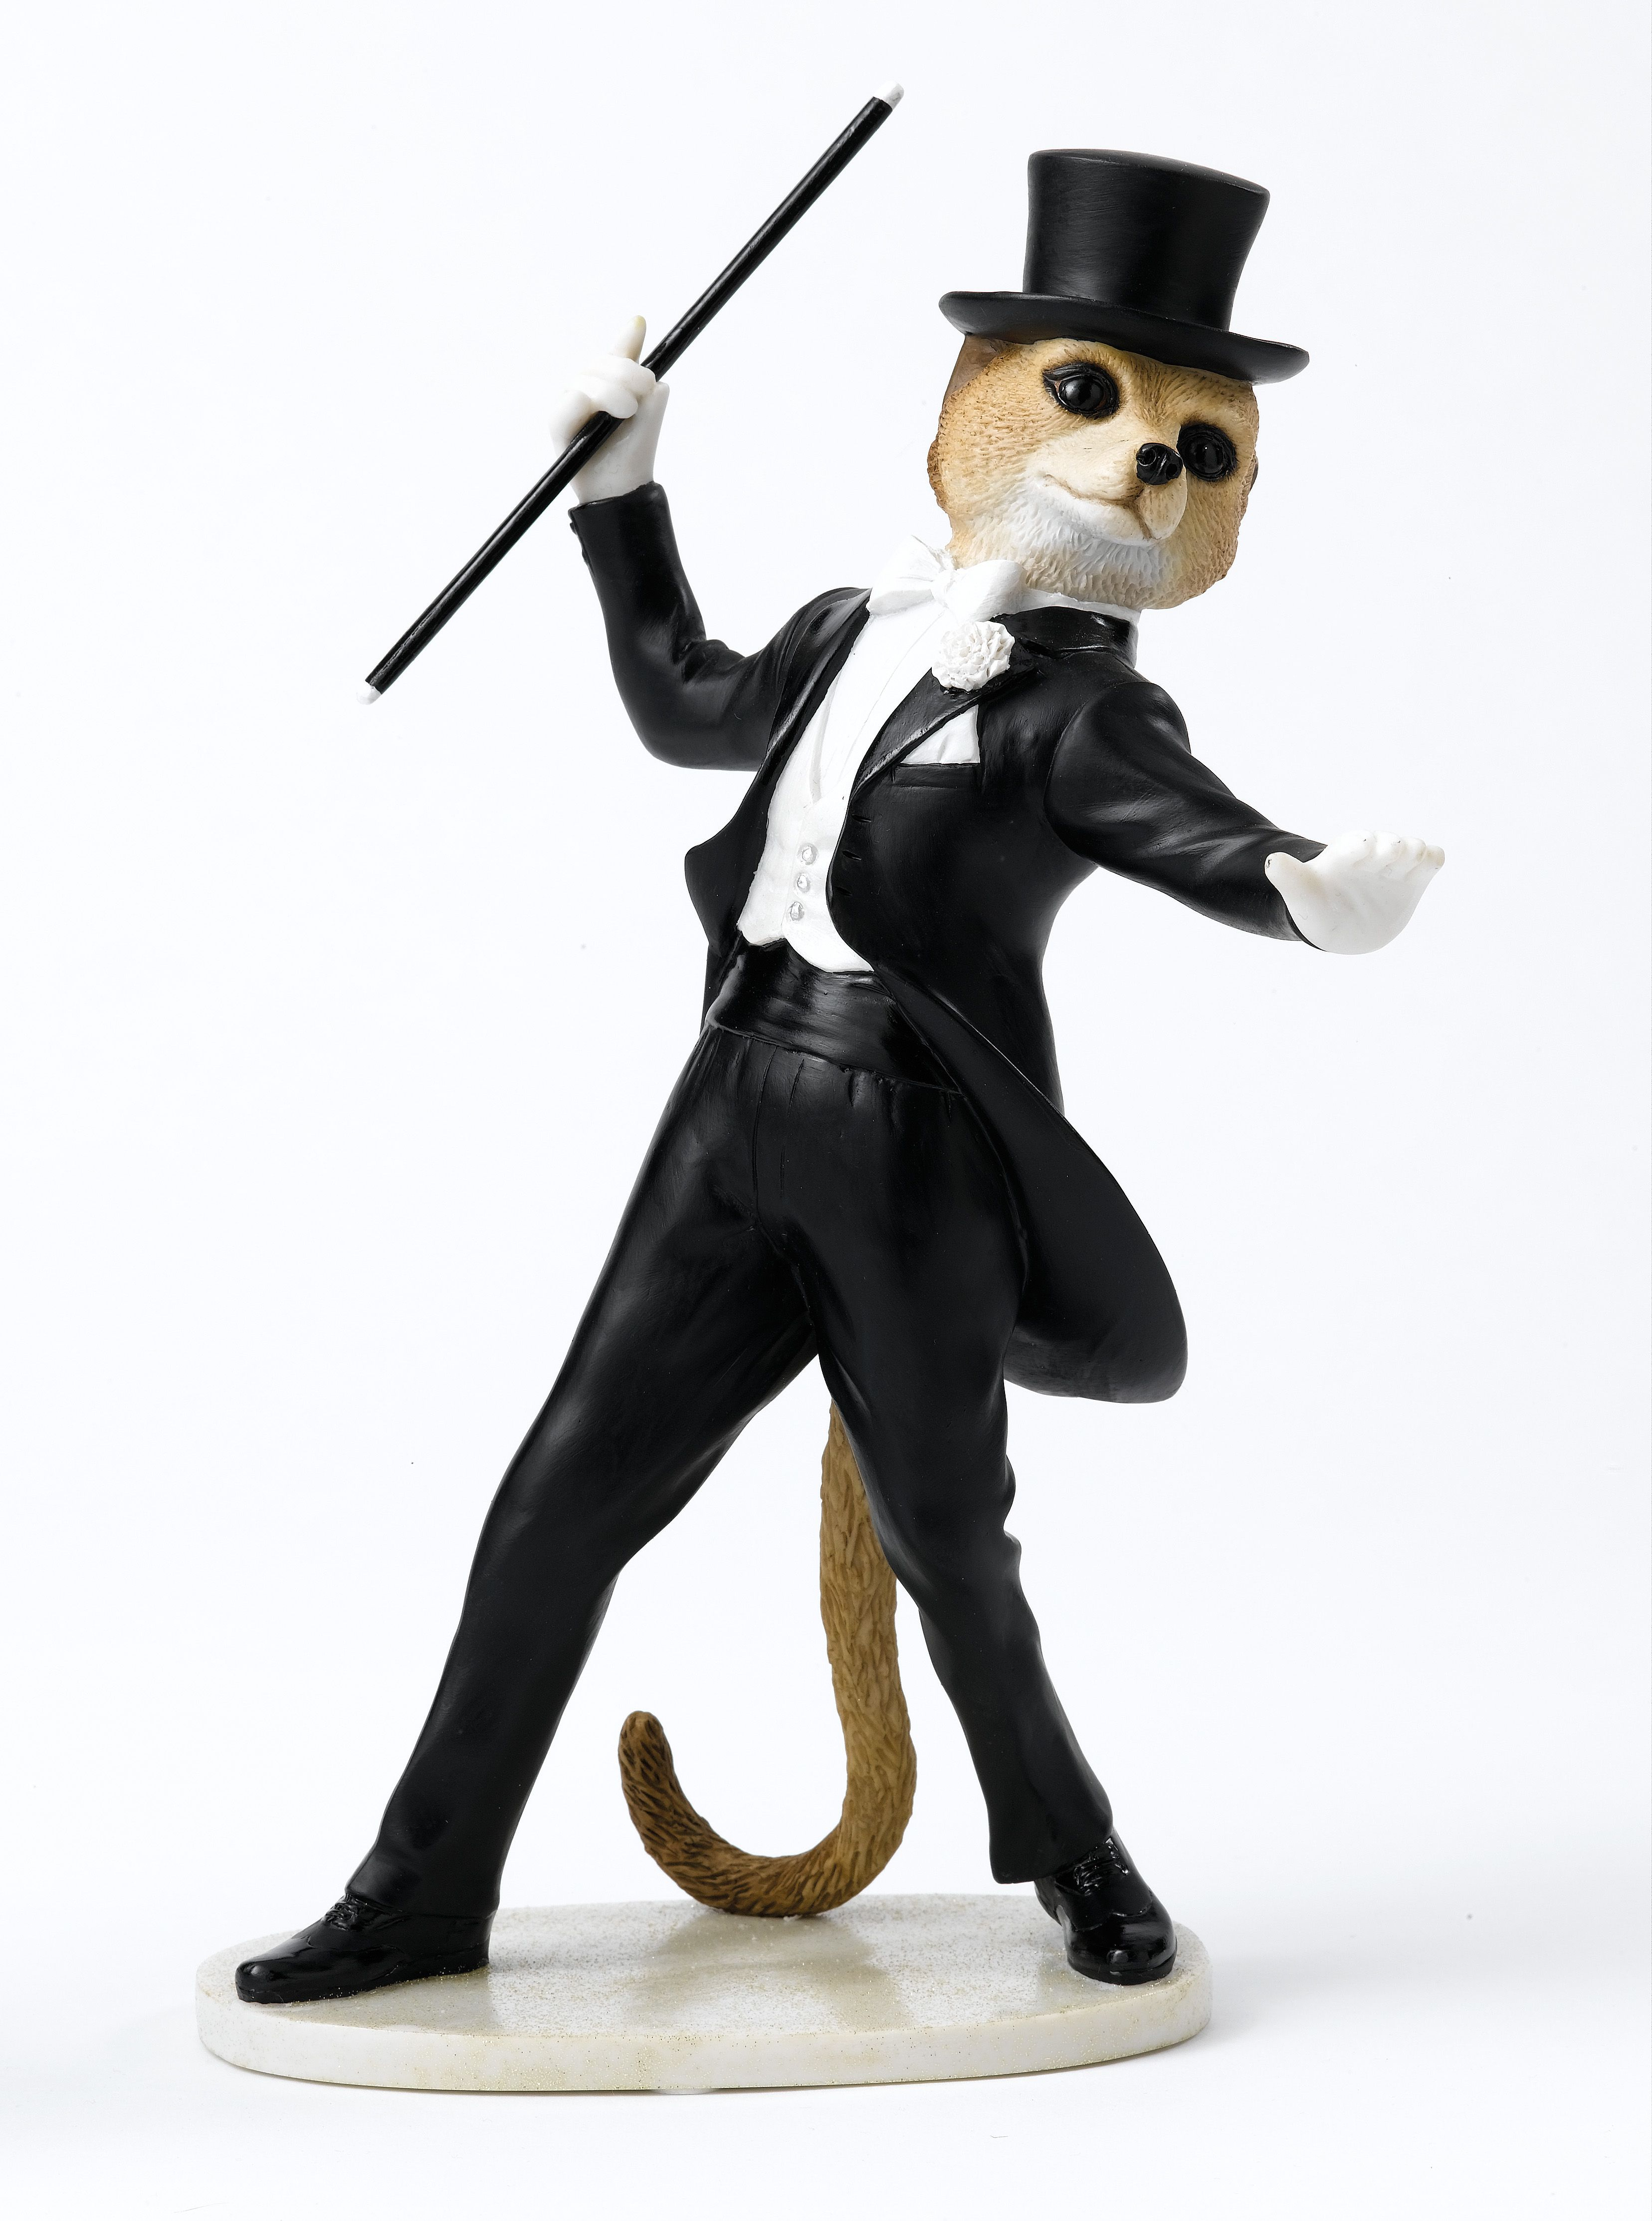 Dressed in his tailored suit, top hat and cane, Dancer is